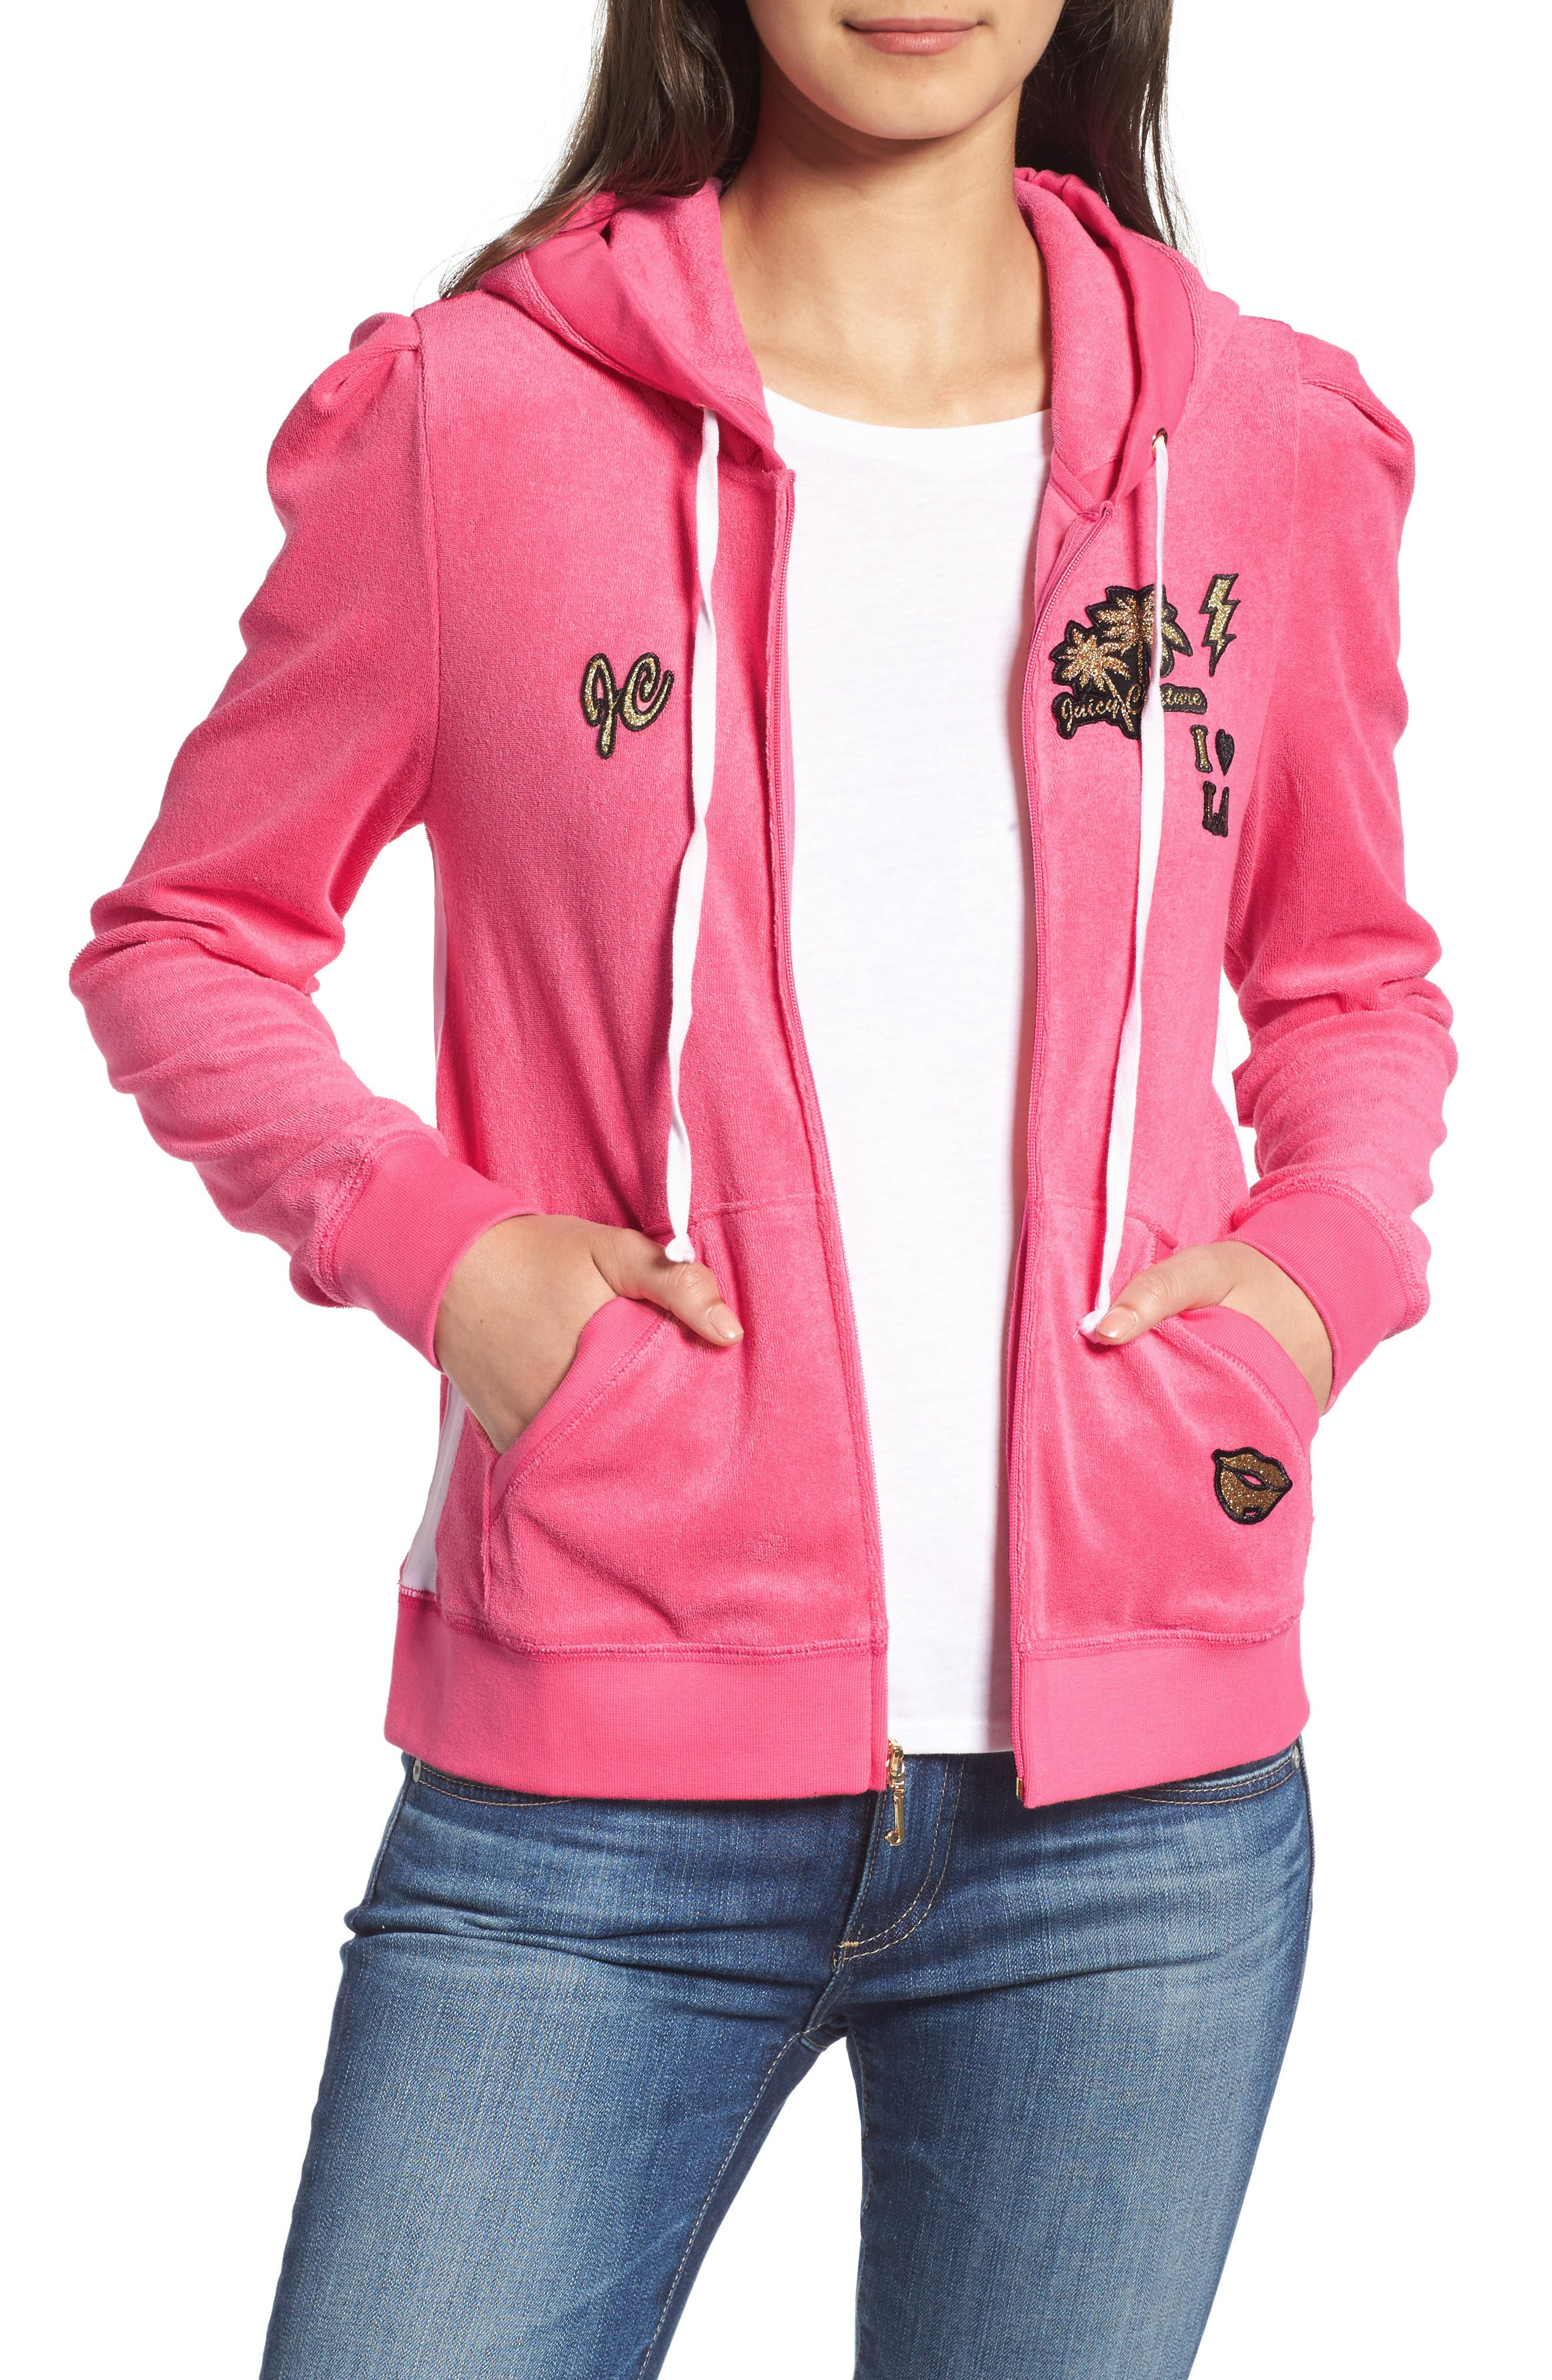 Main Image - Juicy Couture Venice Beach Microterry Hoodie